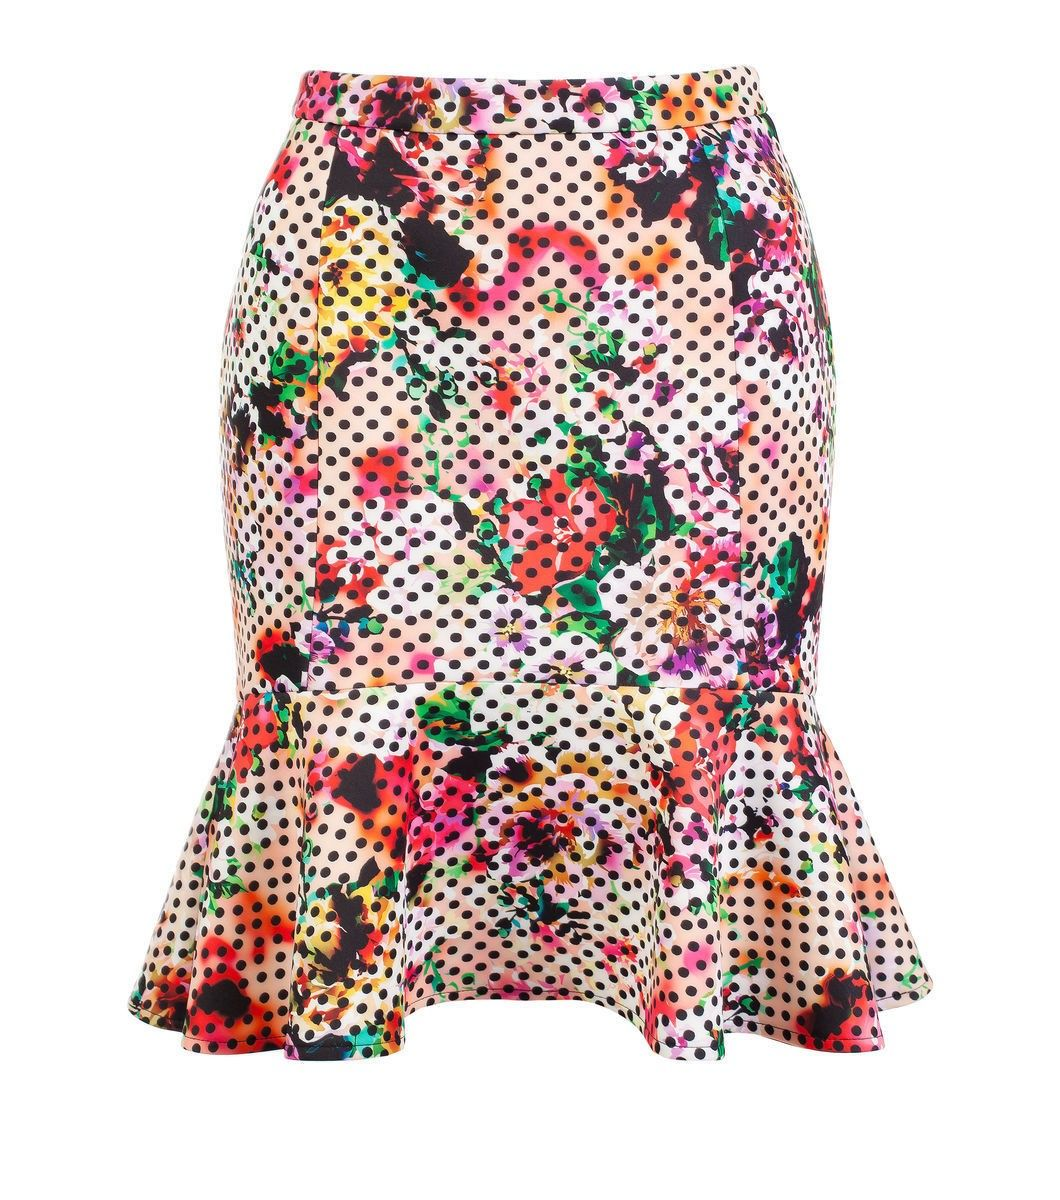 Alannah hill she plays up skirt http shop alannahhill com monte carlosummer 2014